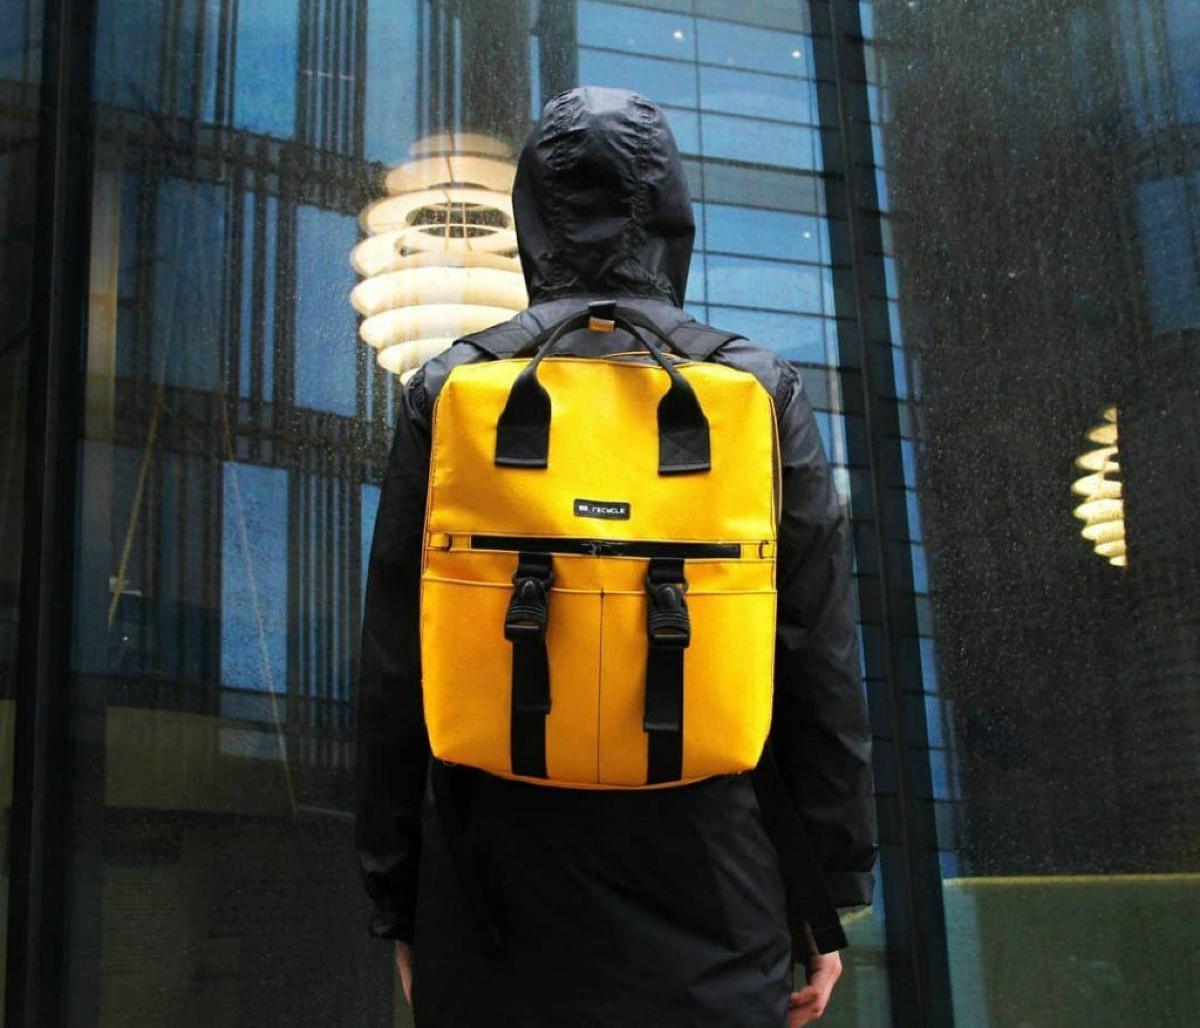 A yellow backpack made from recycled materials by the brand 99recycle in Russia